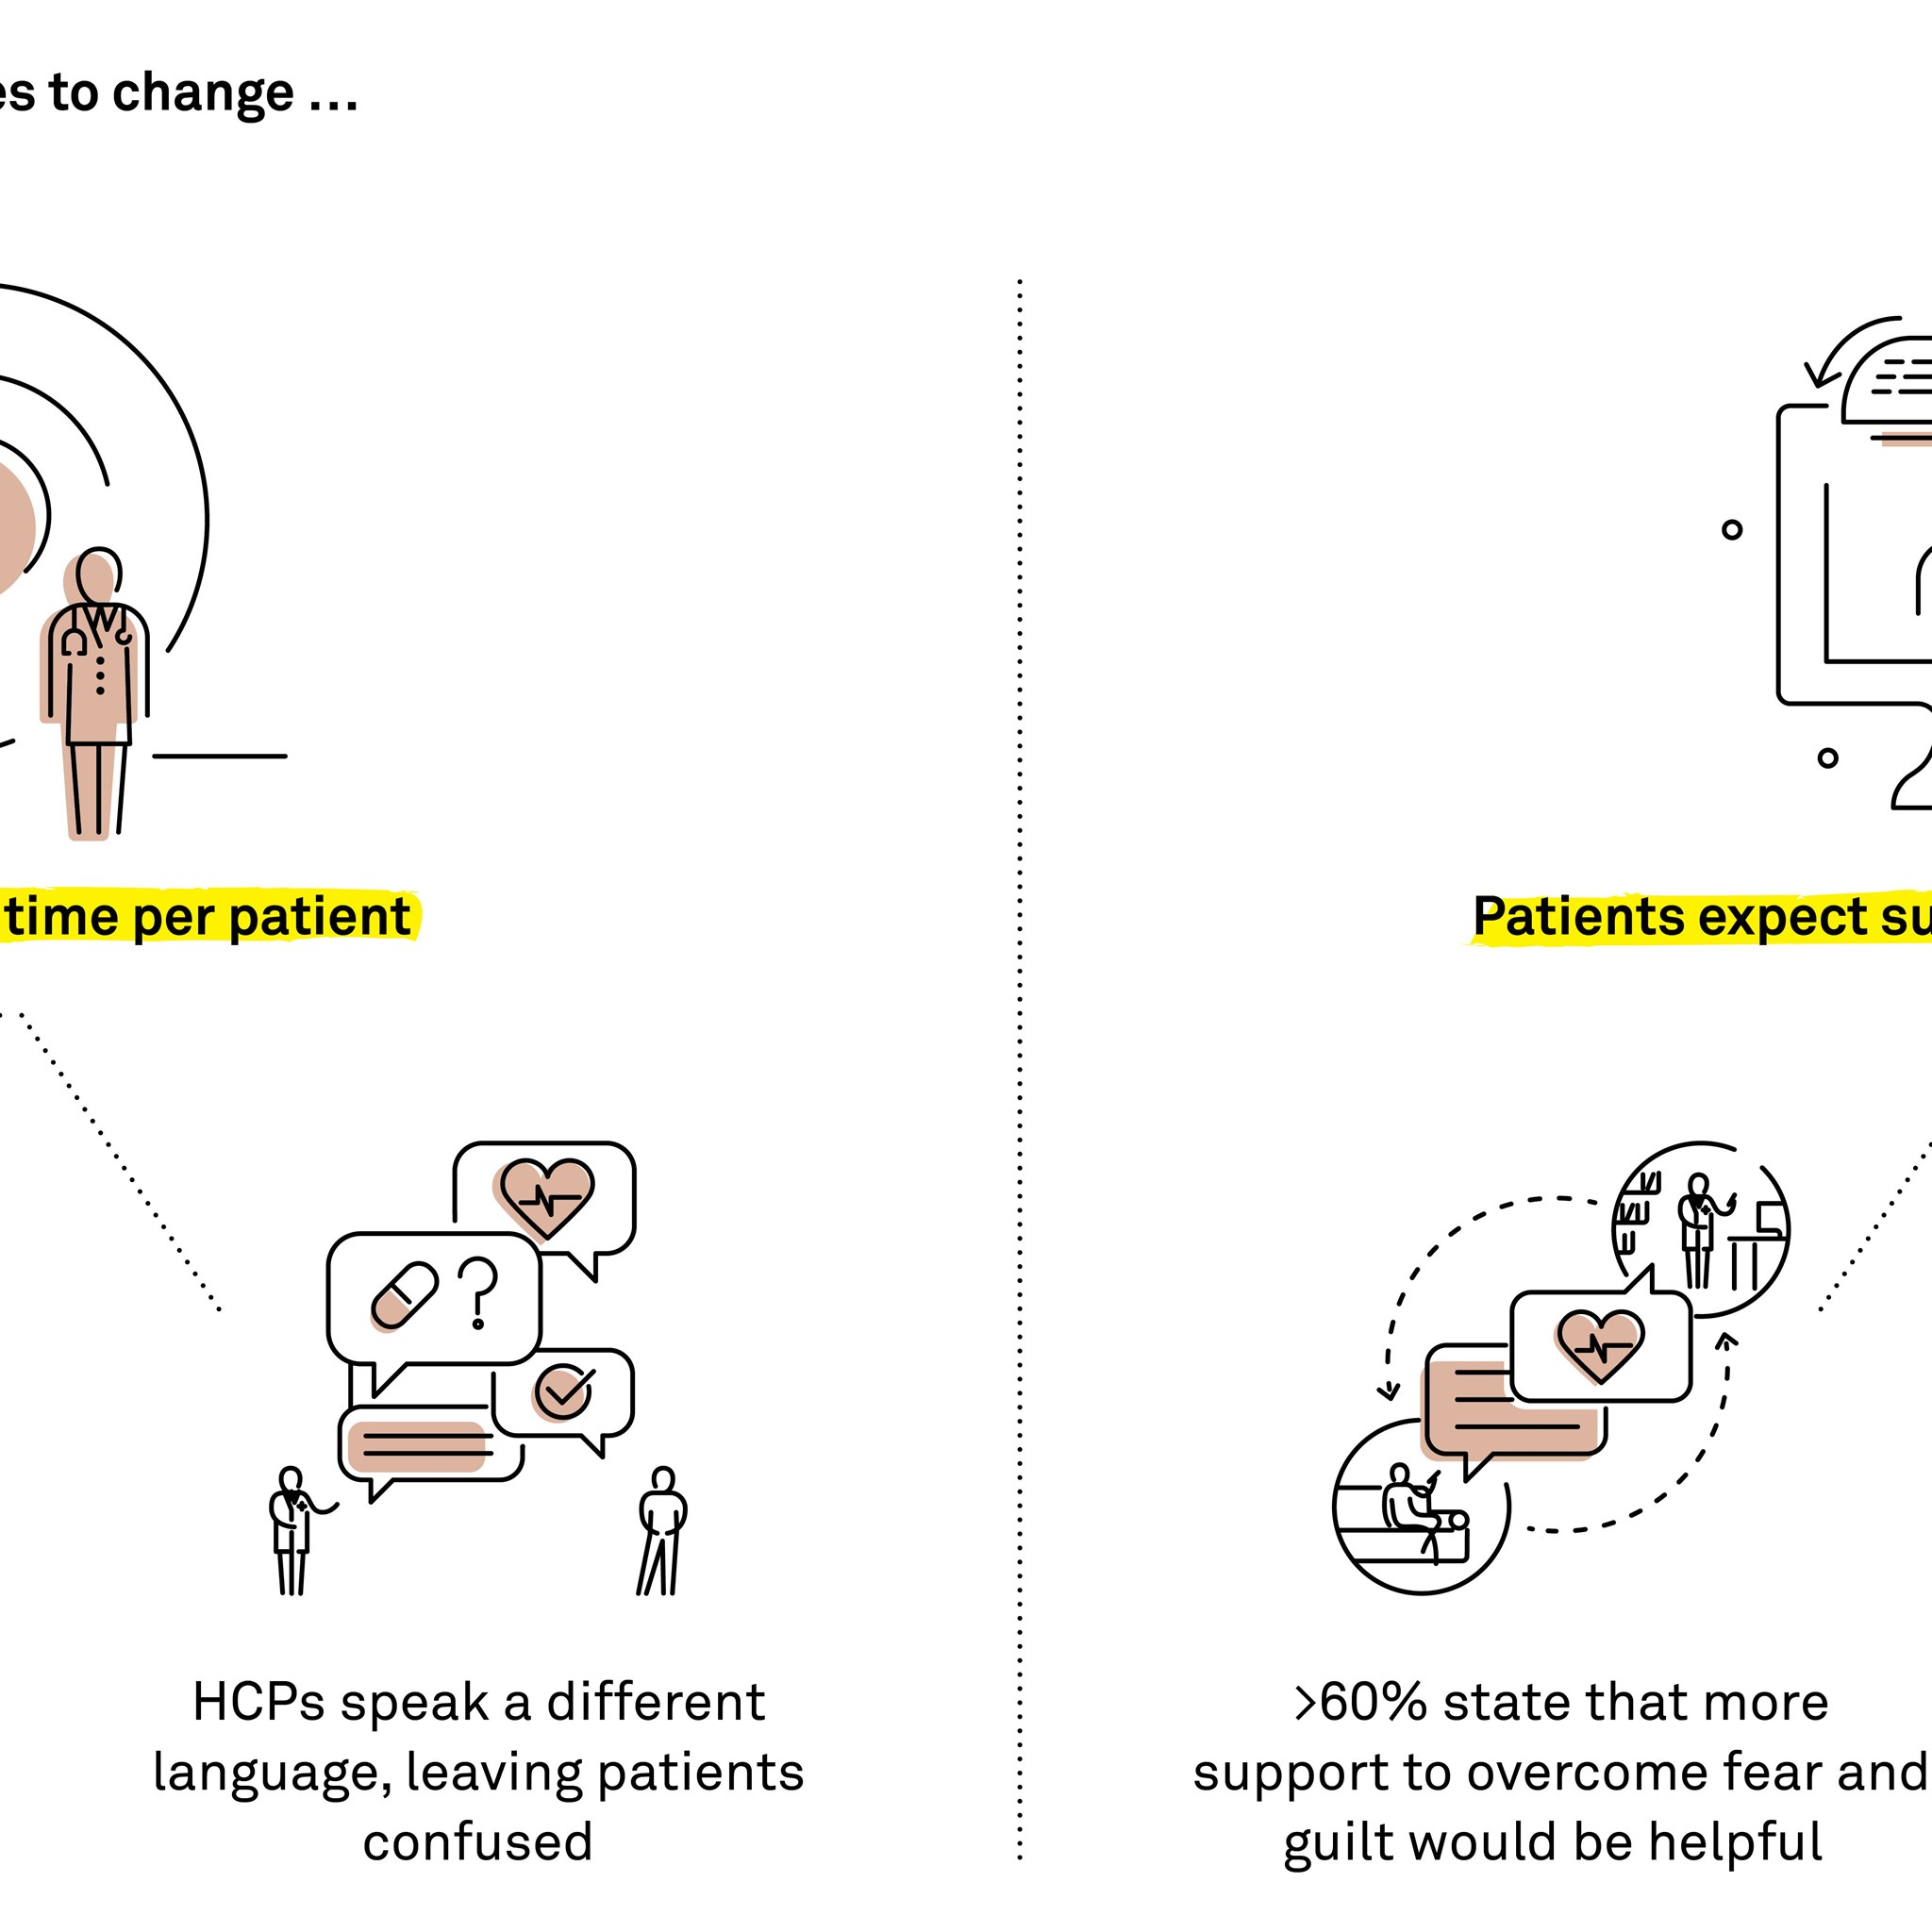 A summery of our key learnings for succeeding with either patient support programmes.